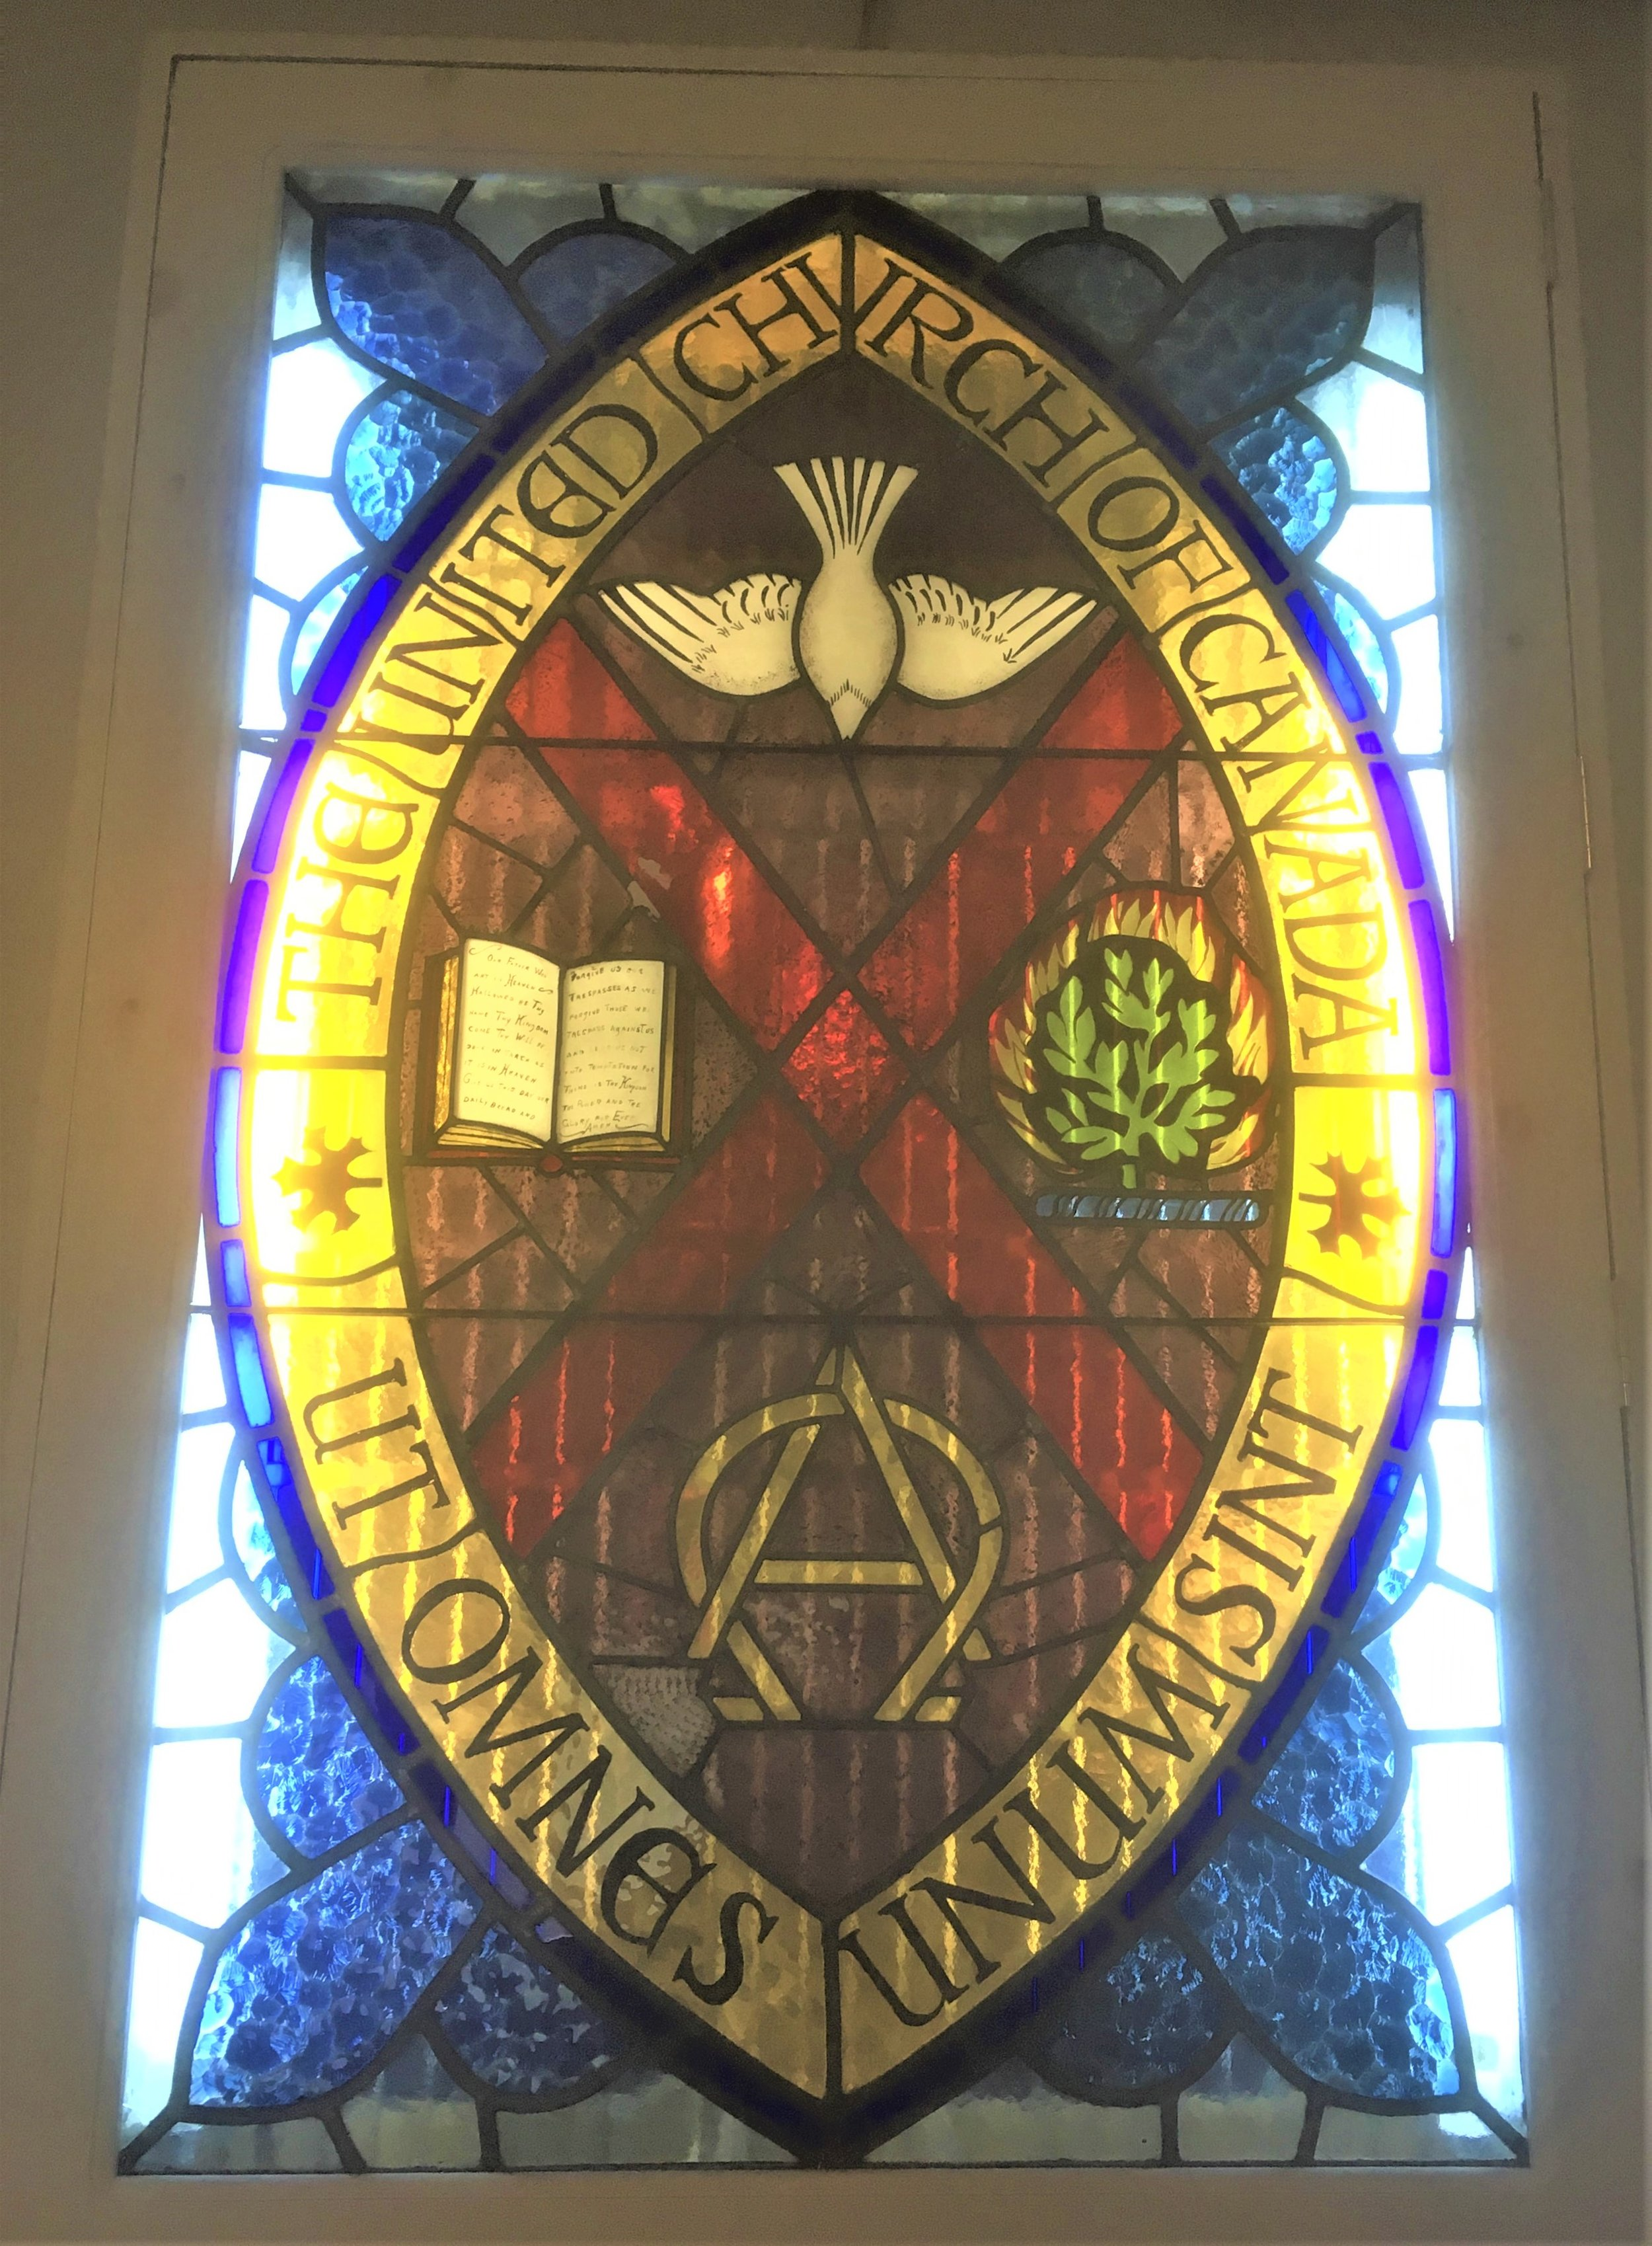 Crest_stained_glass (2).jpg